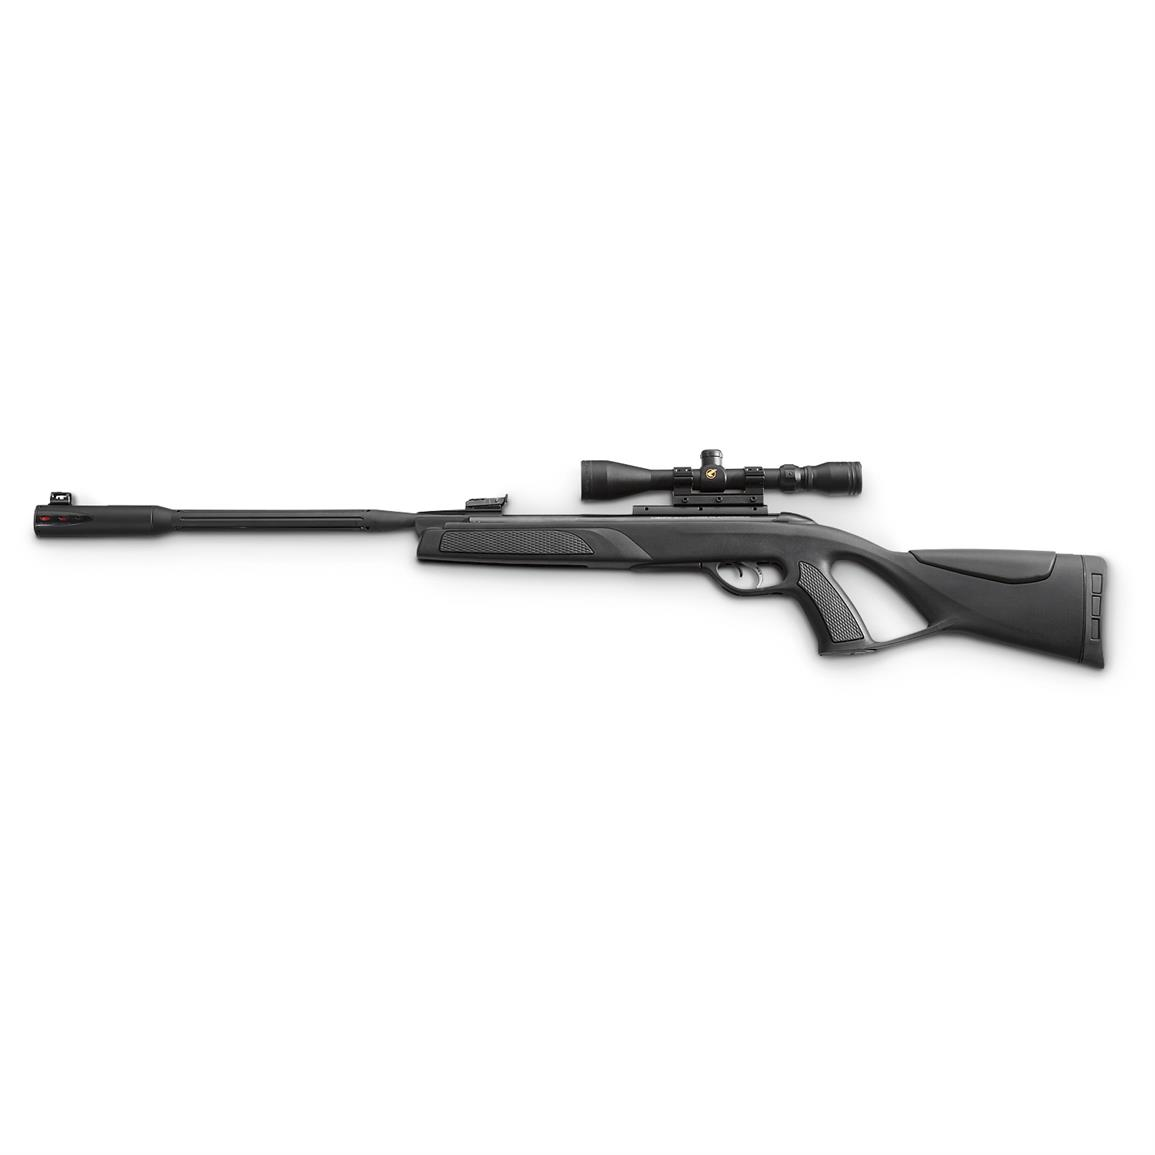 Gamo Whisper Fusion Elite Air Rifle, .177 caliber, Refurbished